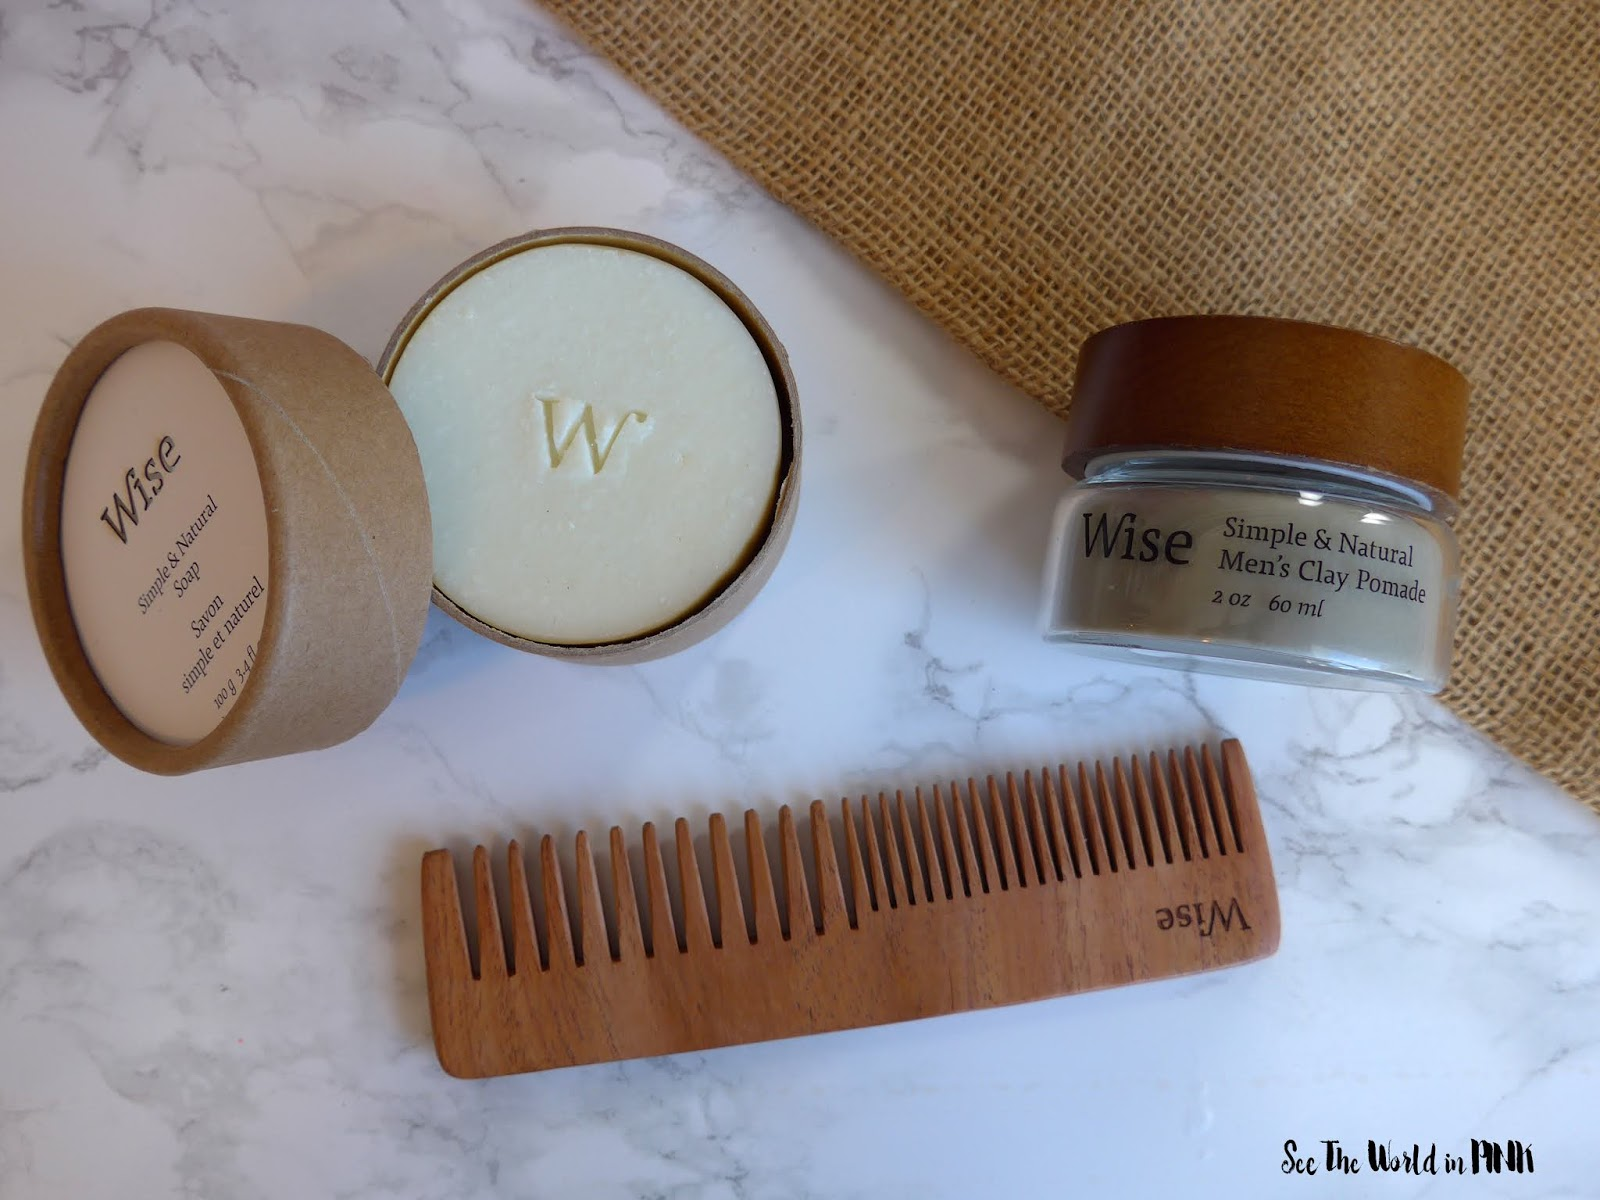 Wise - Canadian Men's Natural, Organic and Vegan Products